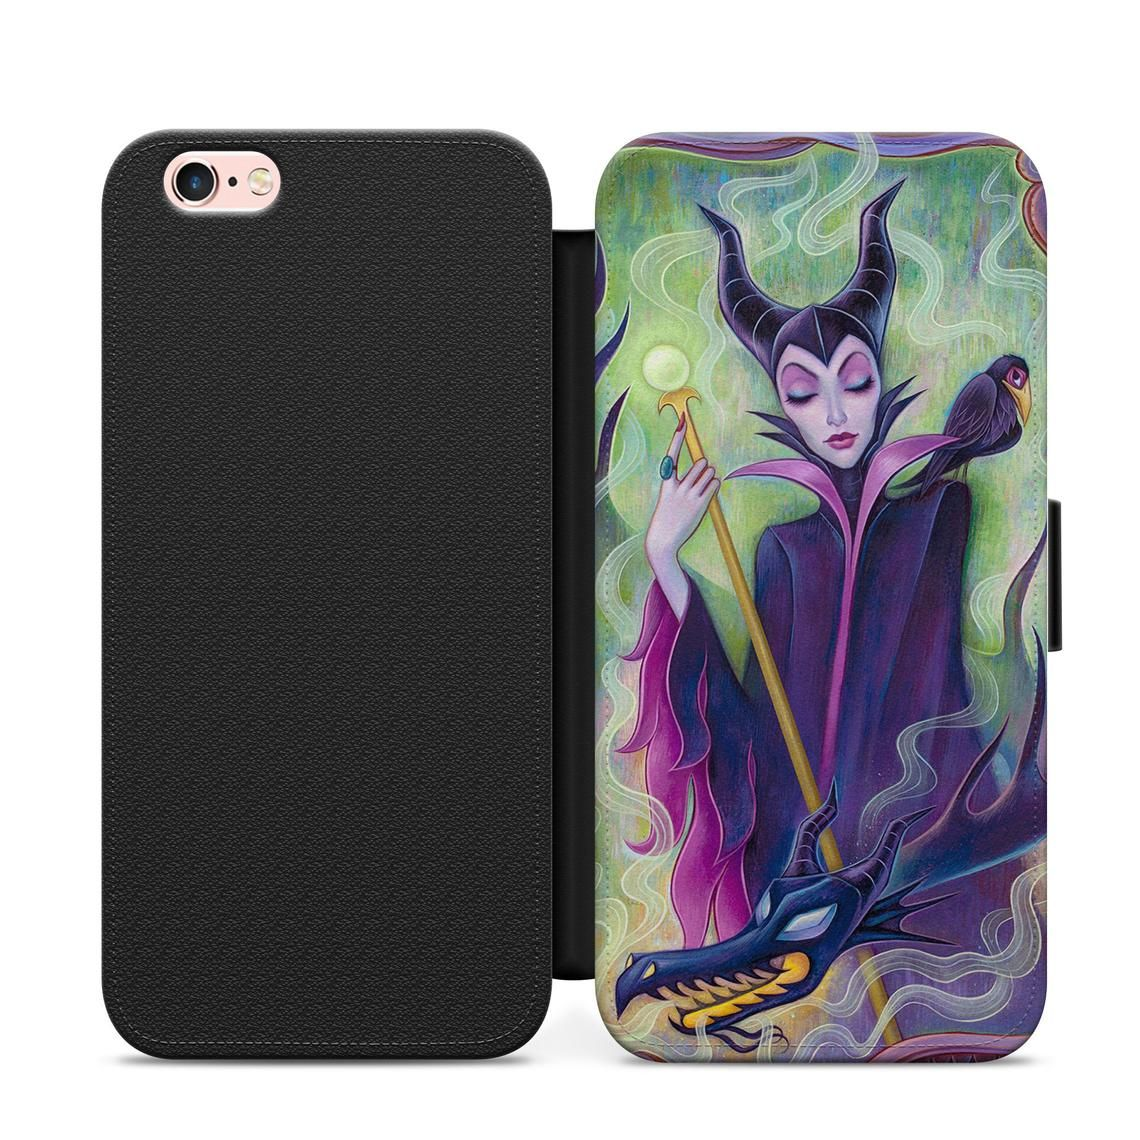 new products dd76b c2837 Disney Maleficent leather wallet flip phone case cover for | Etsy ...